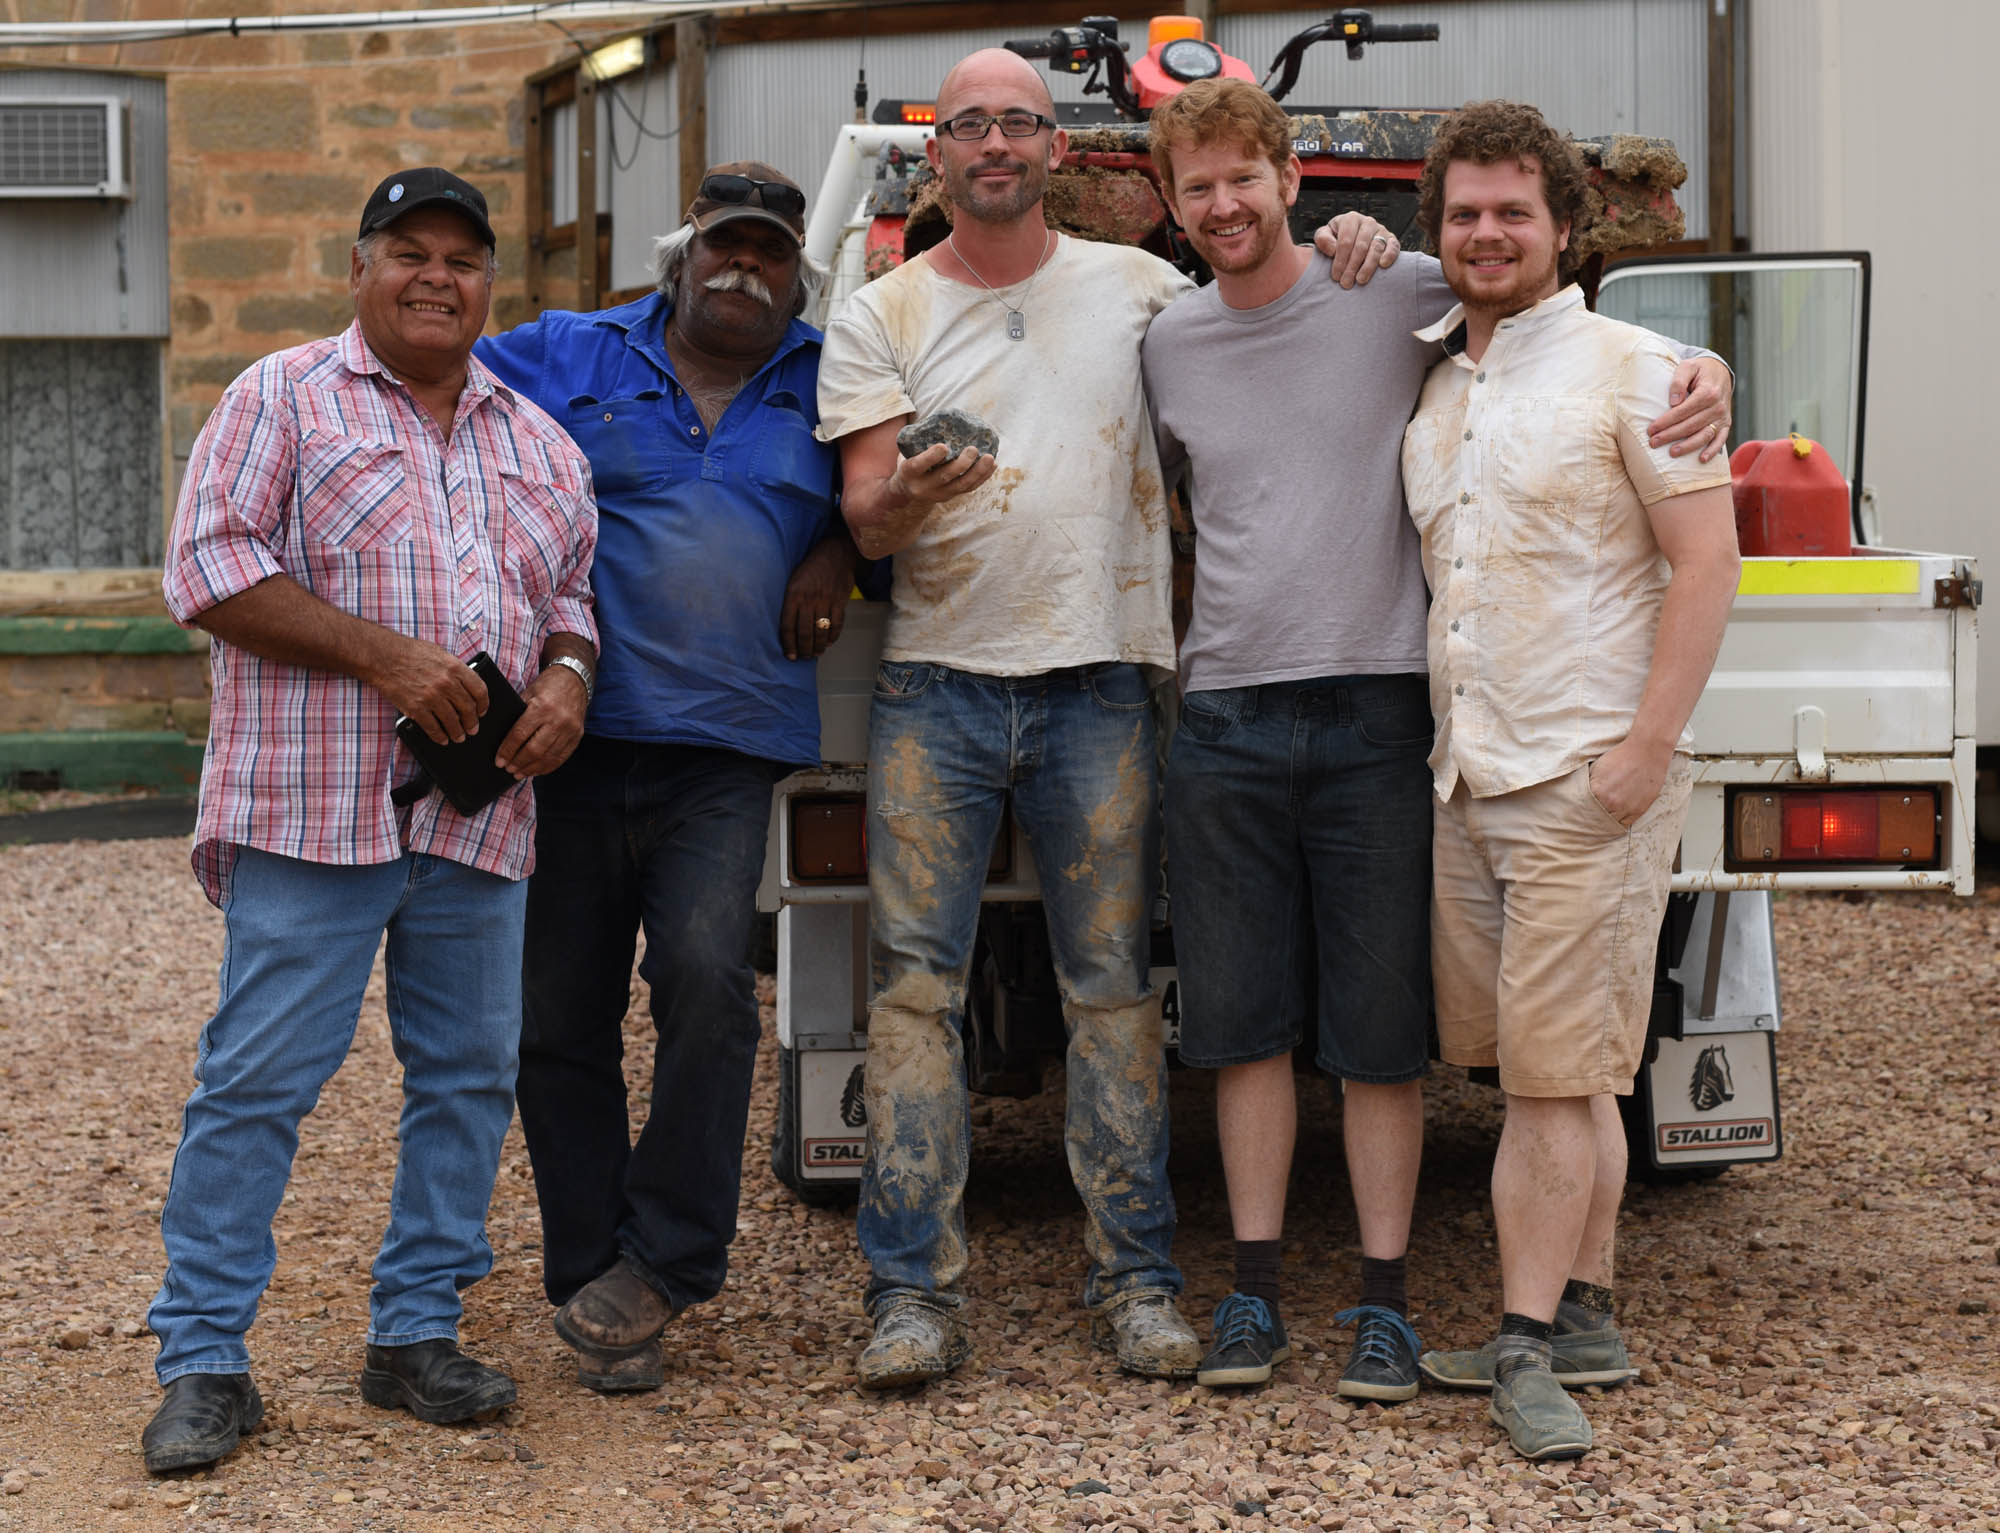 The search team and their find in front of Marree Hotel (left to right: Dean Stuart and Dave Strangways, Professor Phil Bland, Dr Jonathan Paxman and Robert Howie) / photo: DFN